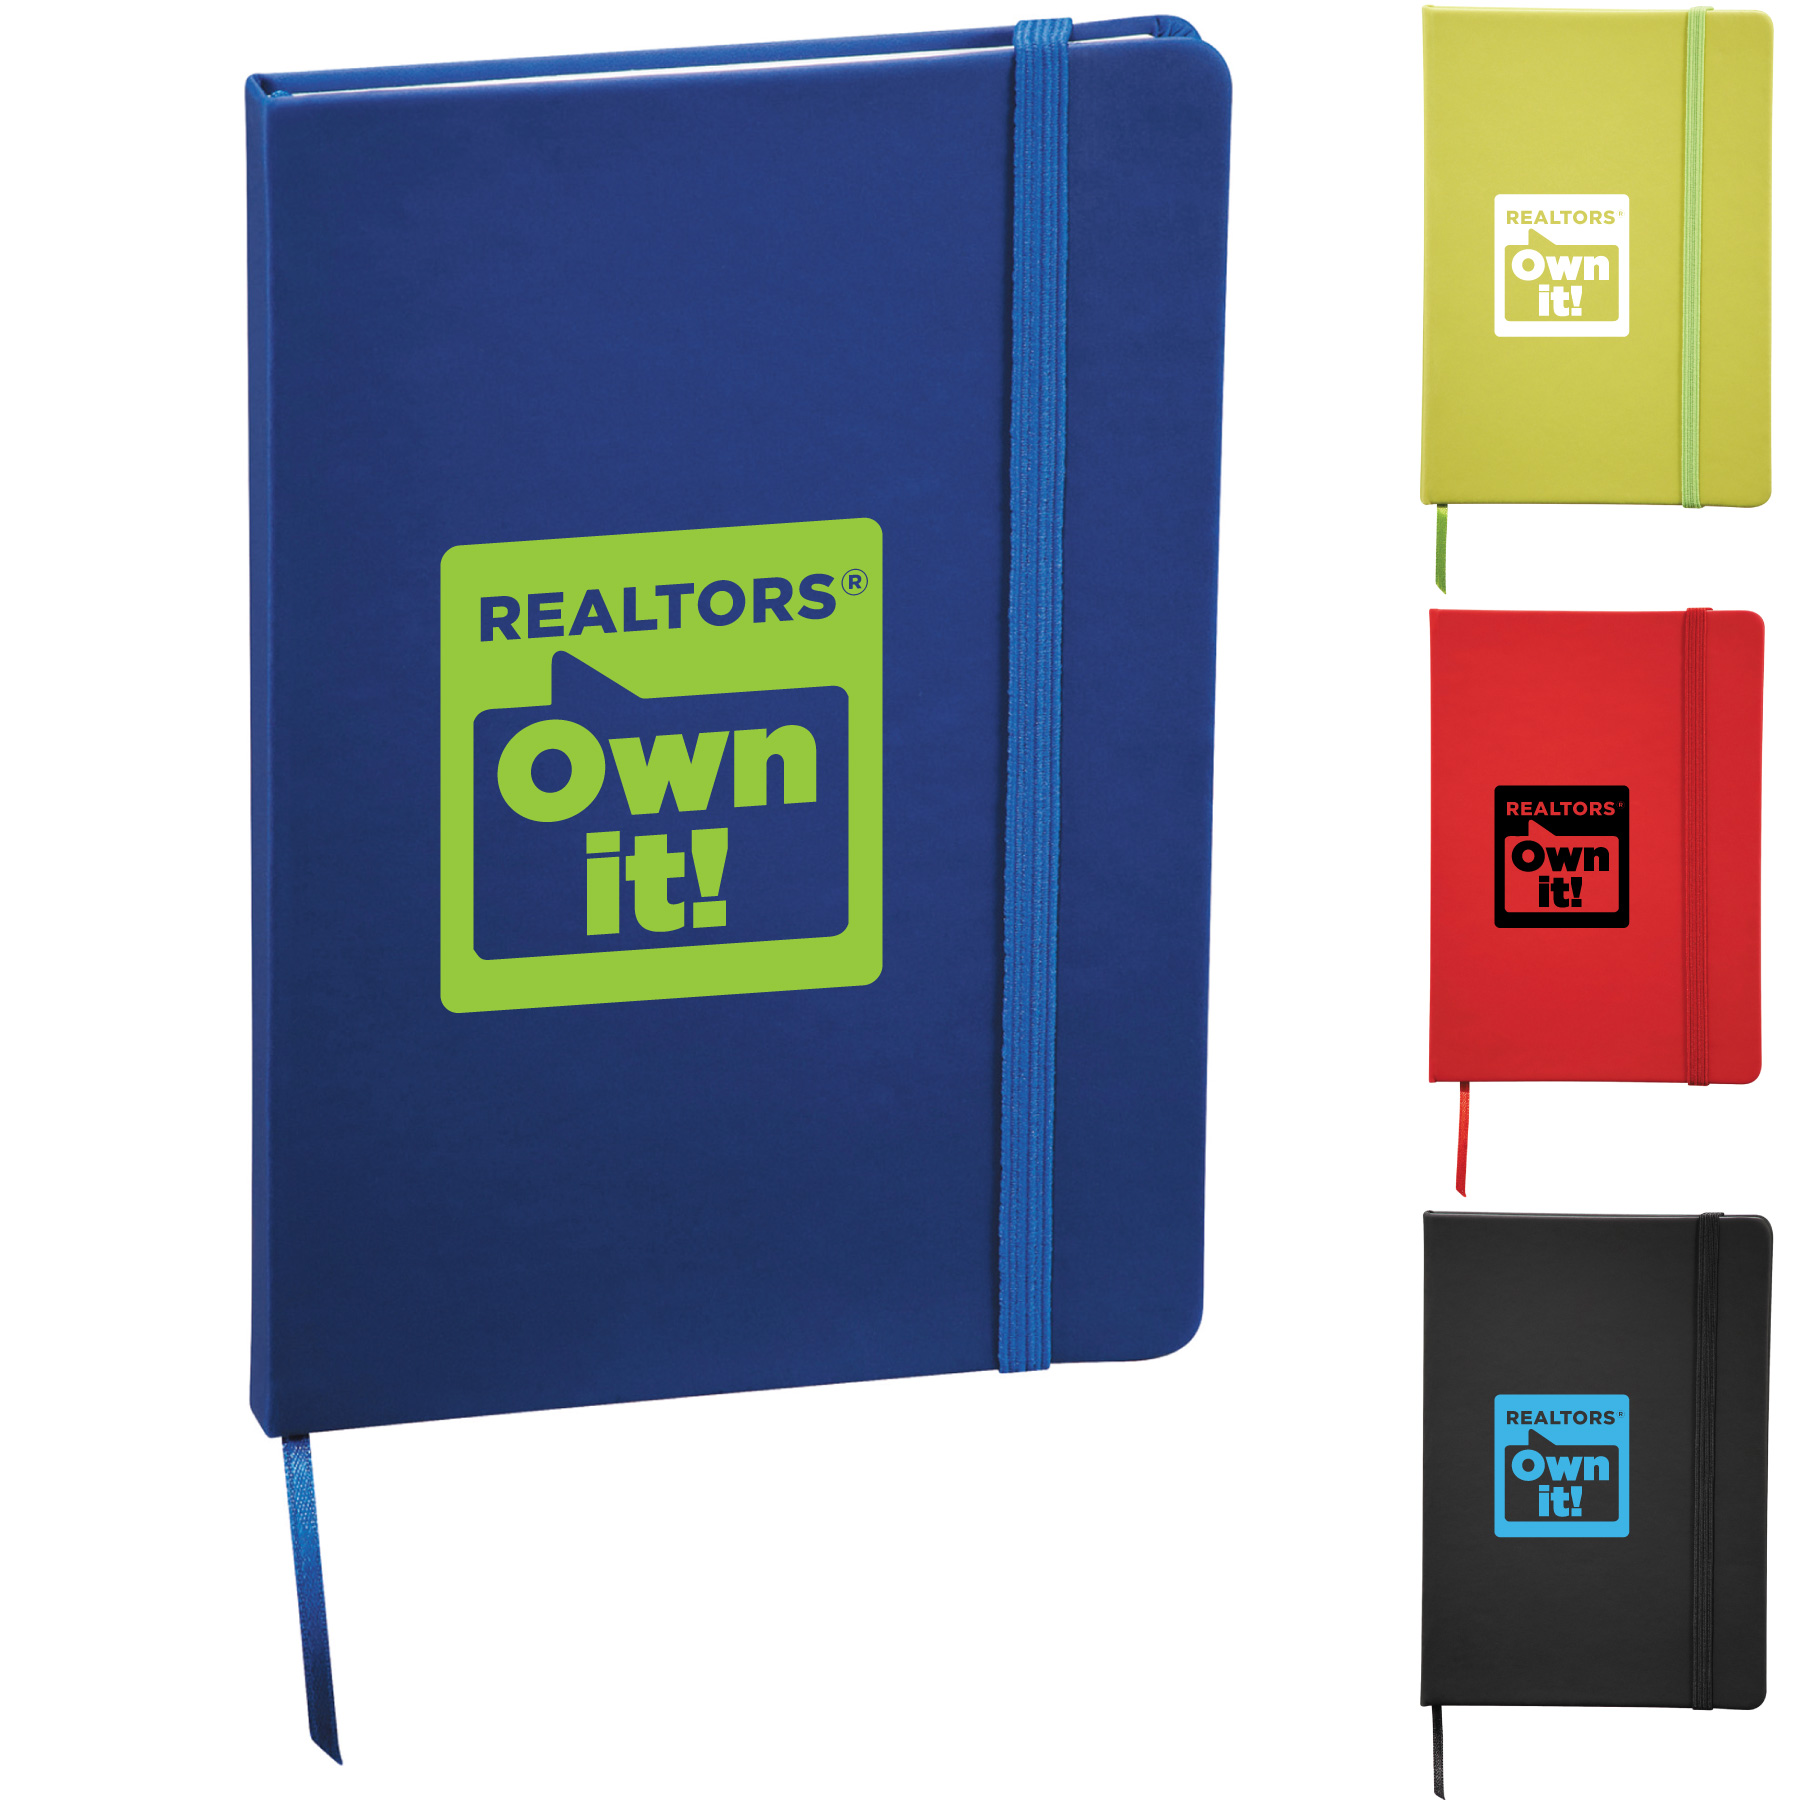 Punch REALTORS® Own it! Notebook (Special Order) Notebooks,Journals,Books,Jotters,Padfolios,Writings,Pads,Papers,stenos